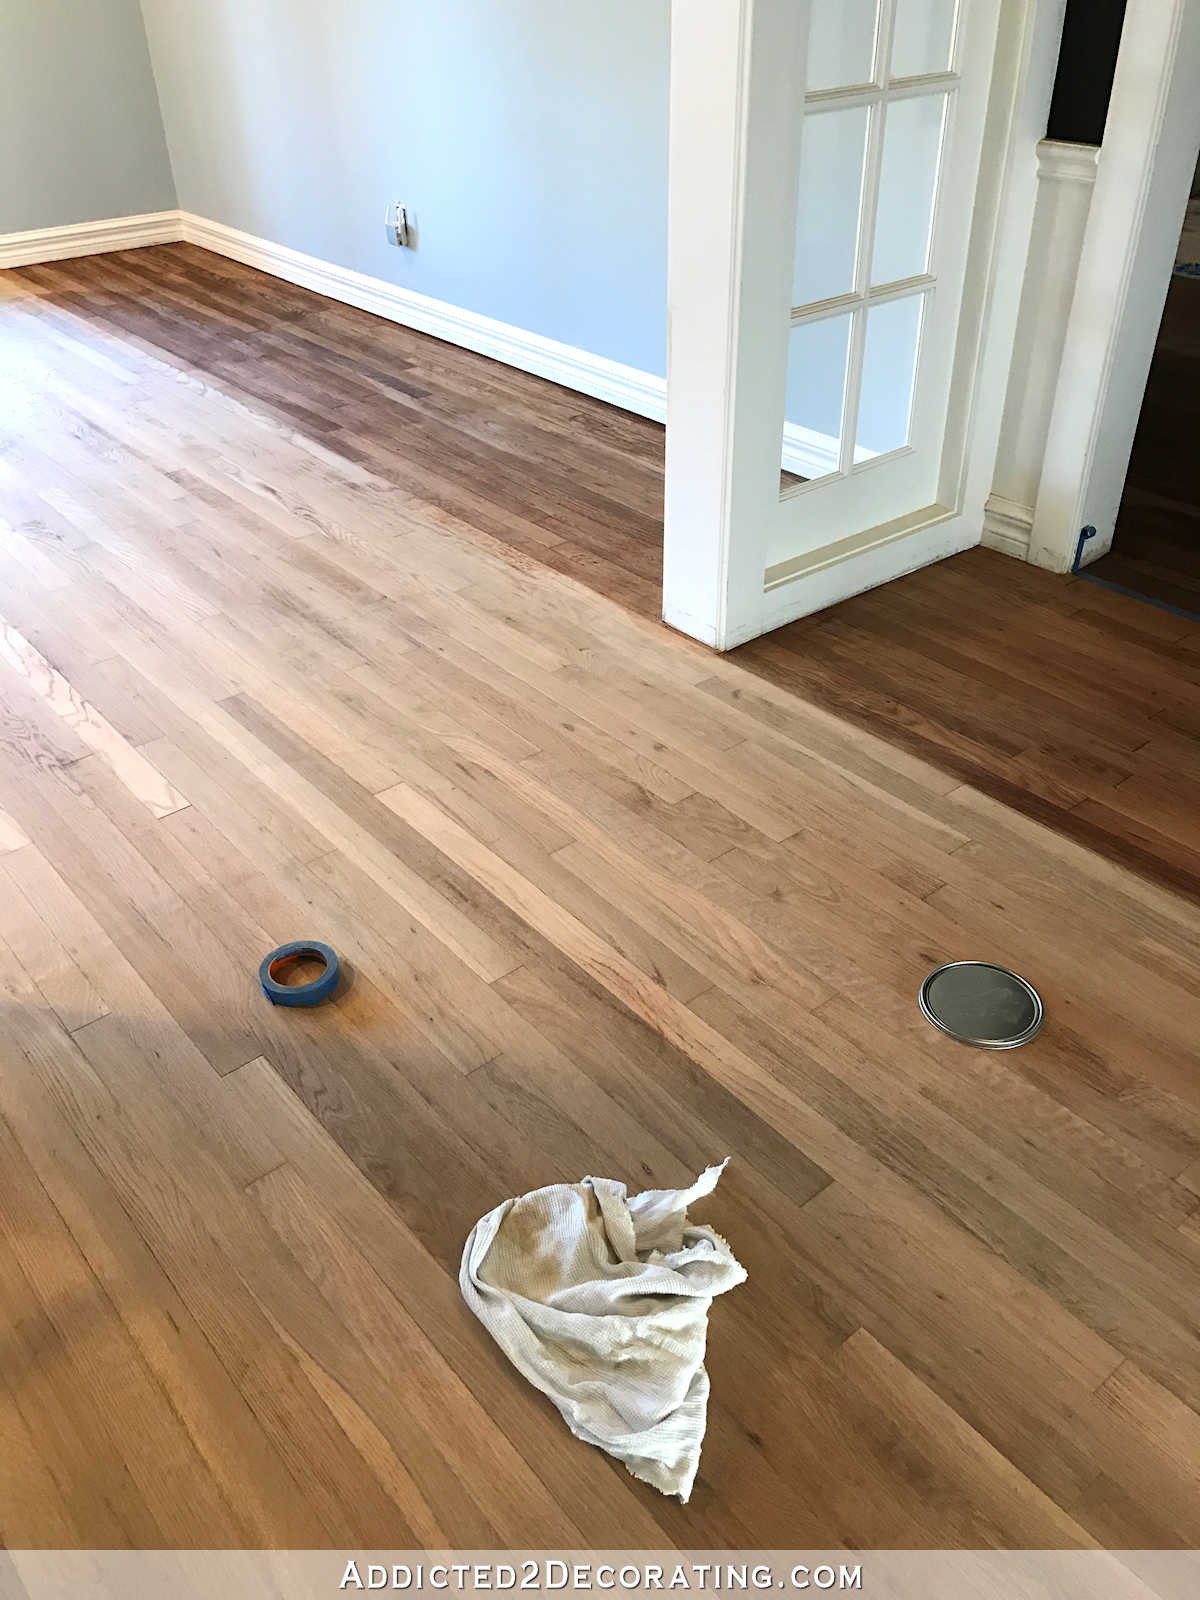 popular hardwood floor colors 2016 of adventures in staining my red oak hardwood floors products process with regard to staining red oak hardwood floors 3 entryway and music room